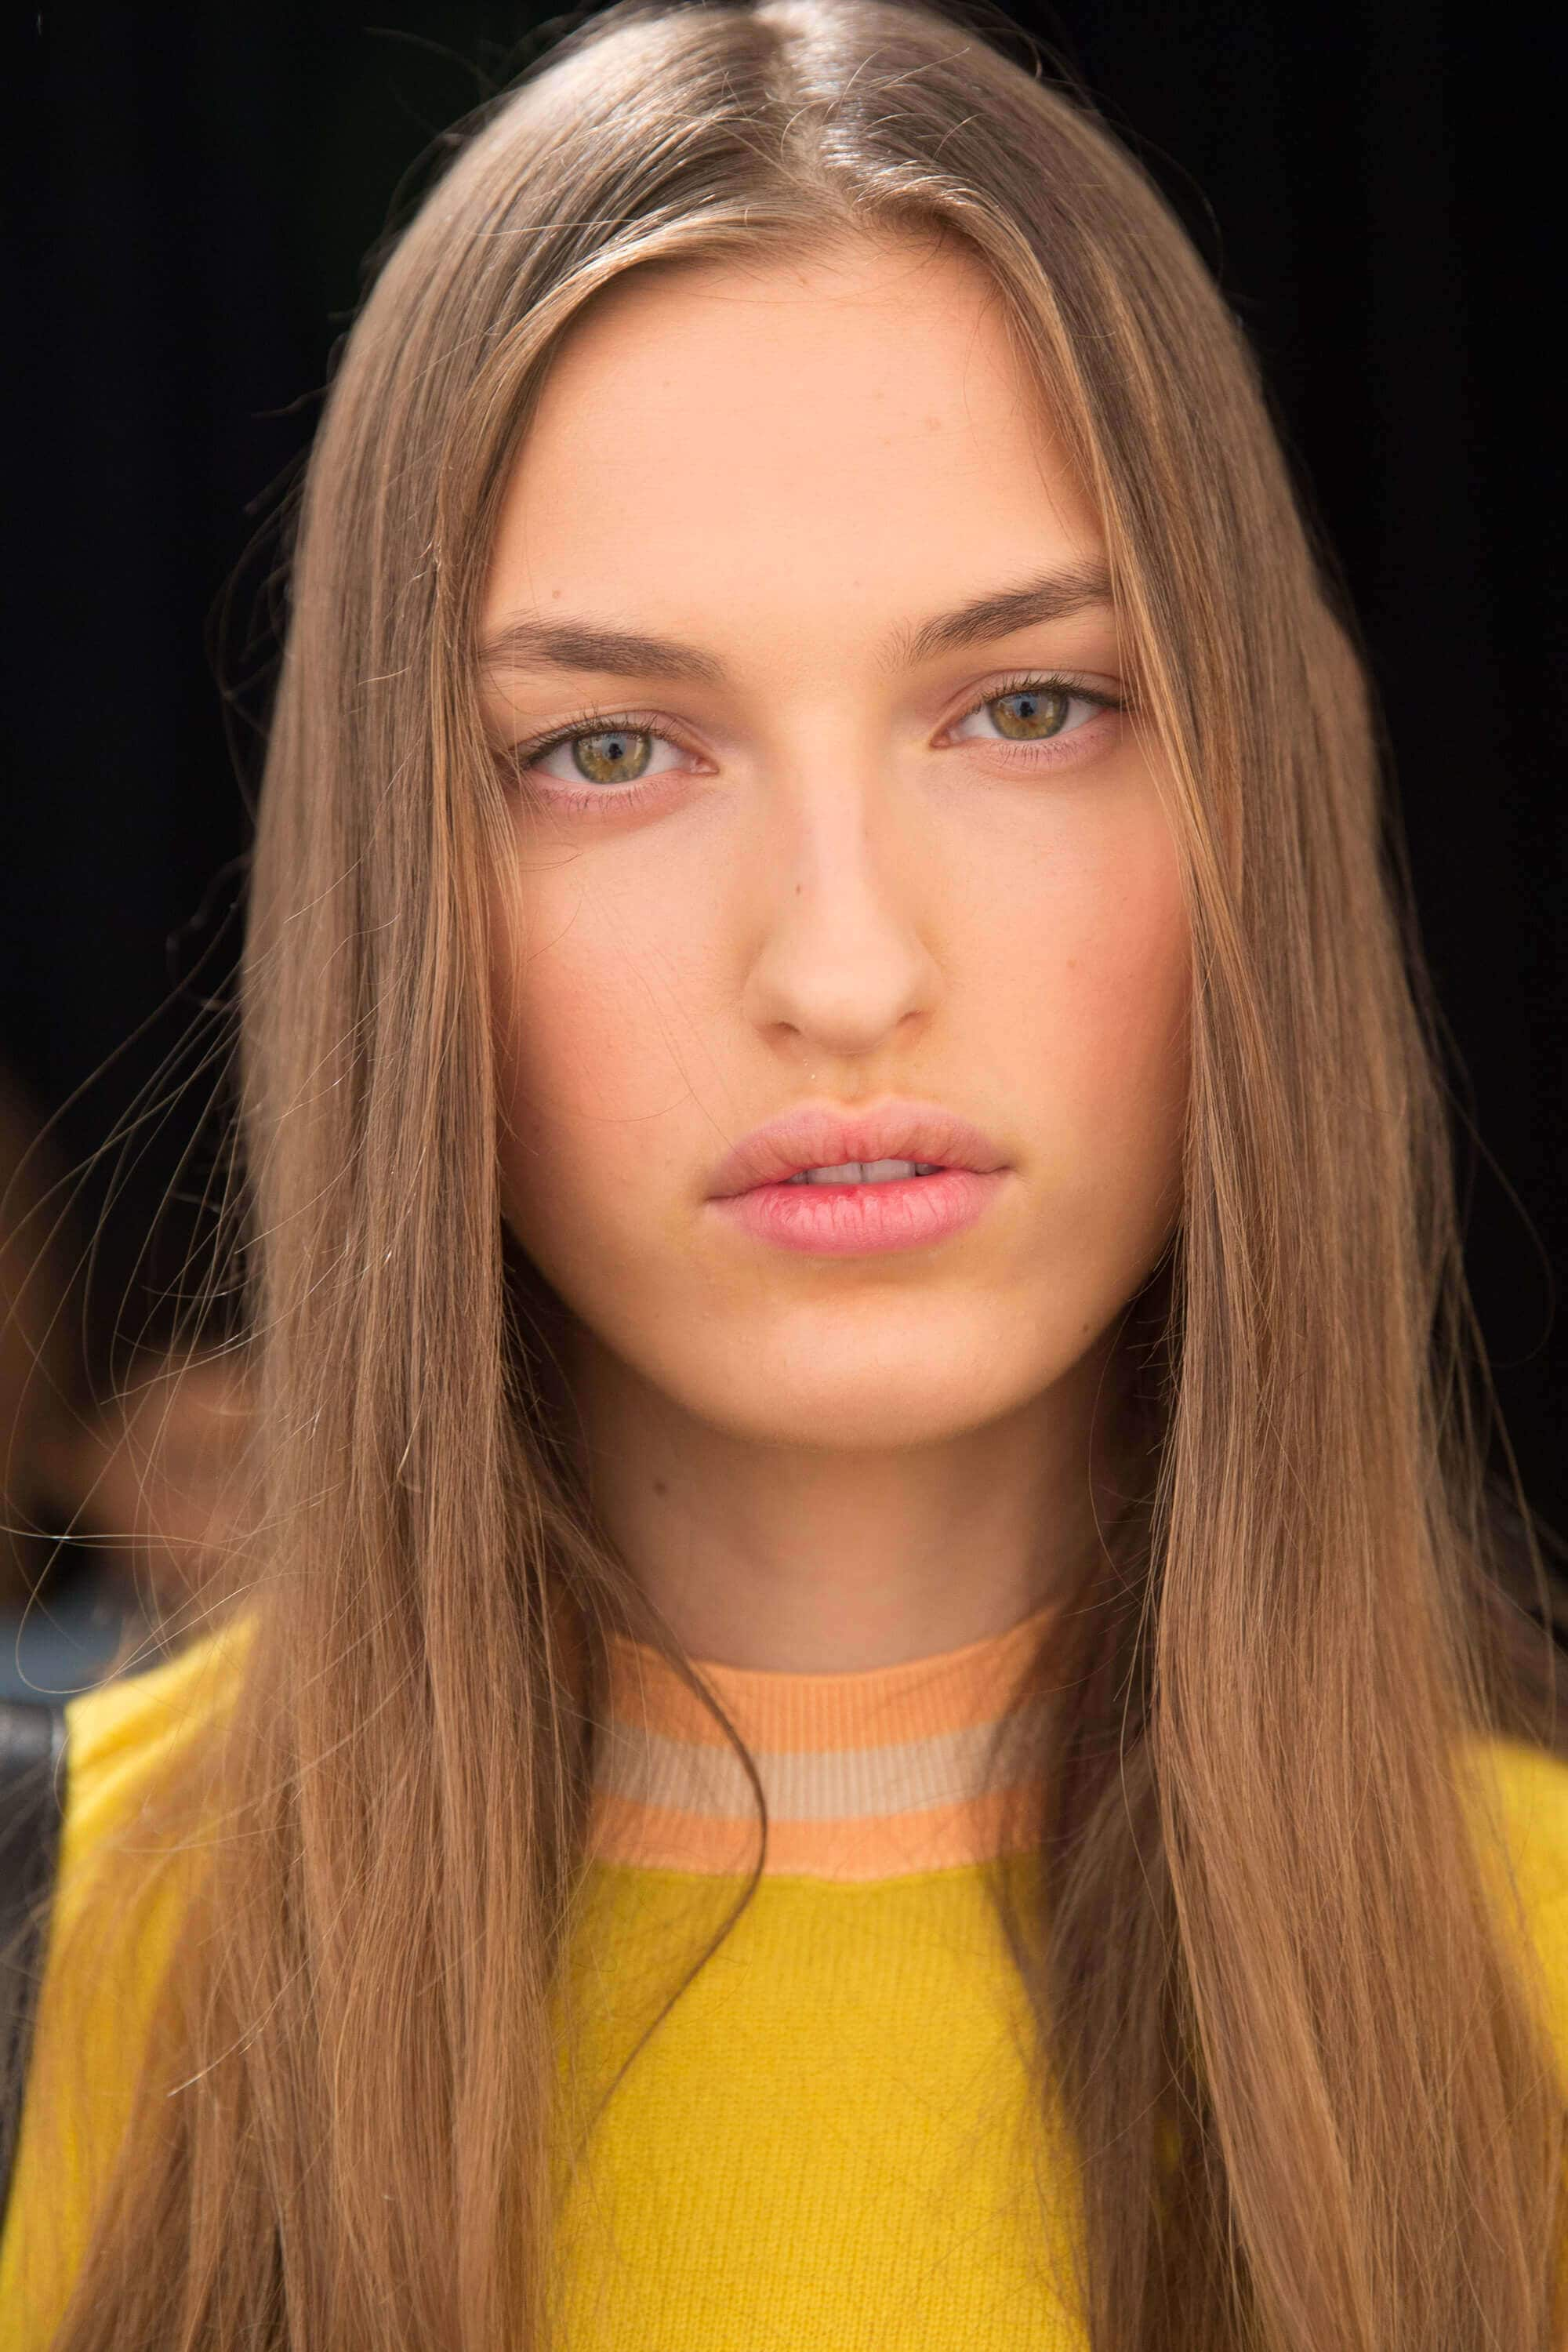 Party hairstyles: Model with long straight dark blonde hair wearing a yellow jumper.